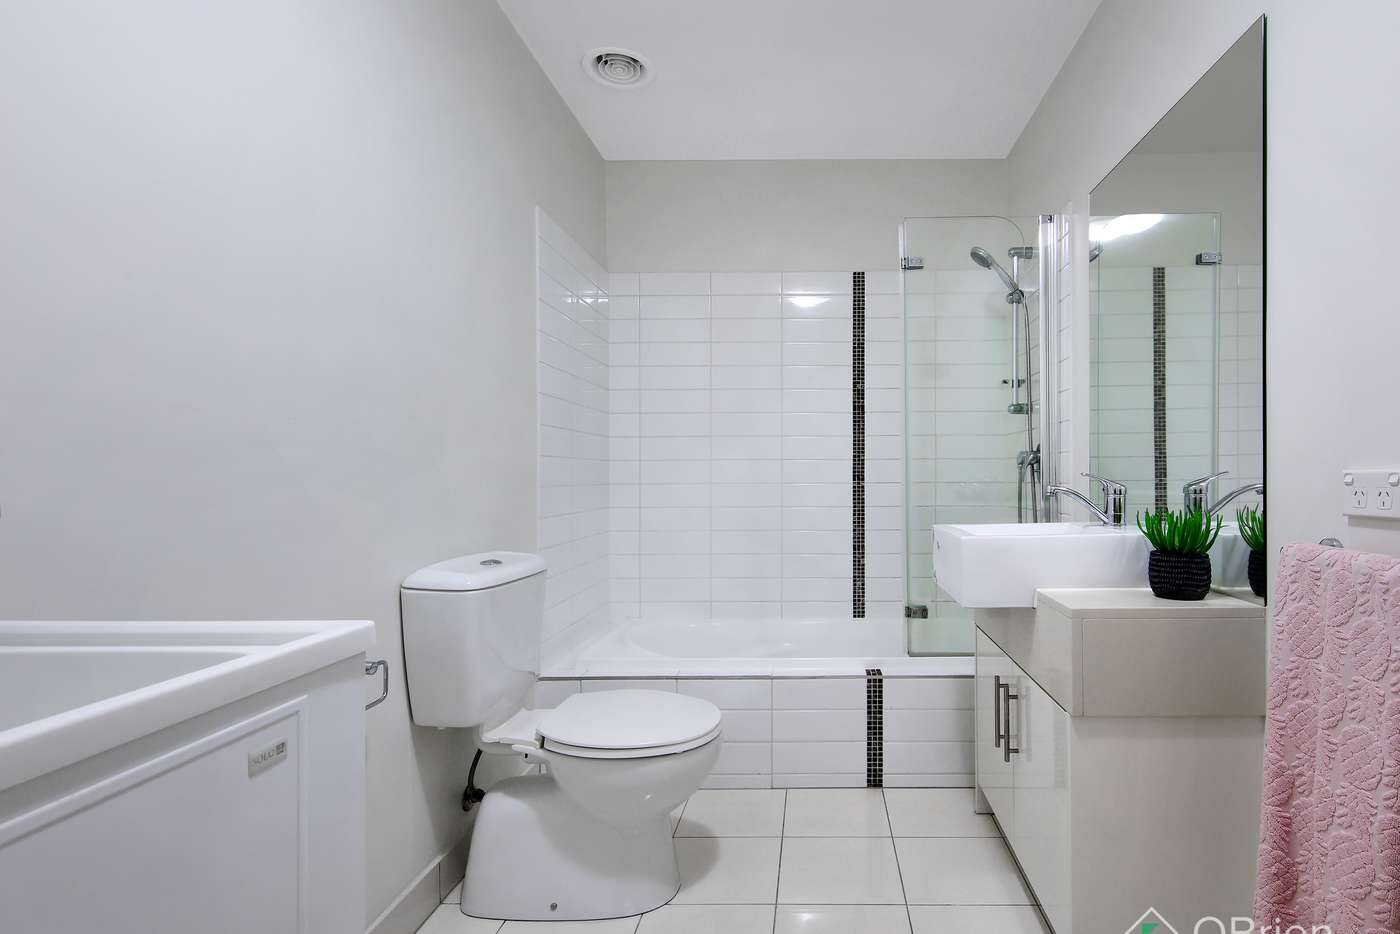 Seventh view of Homely apartment listing, 16/13 Logie Street, Oakleigh VIC 3166